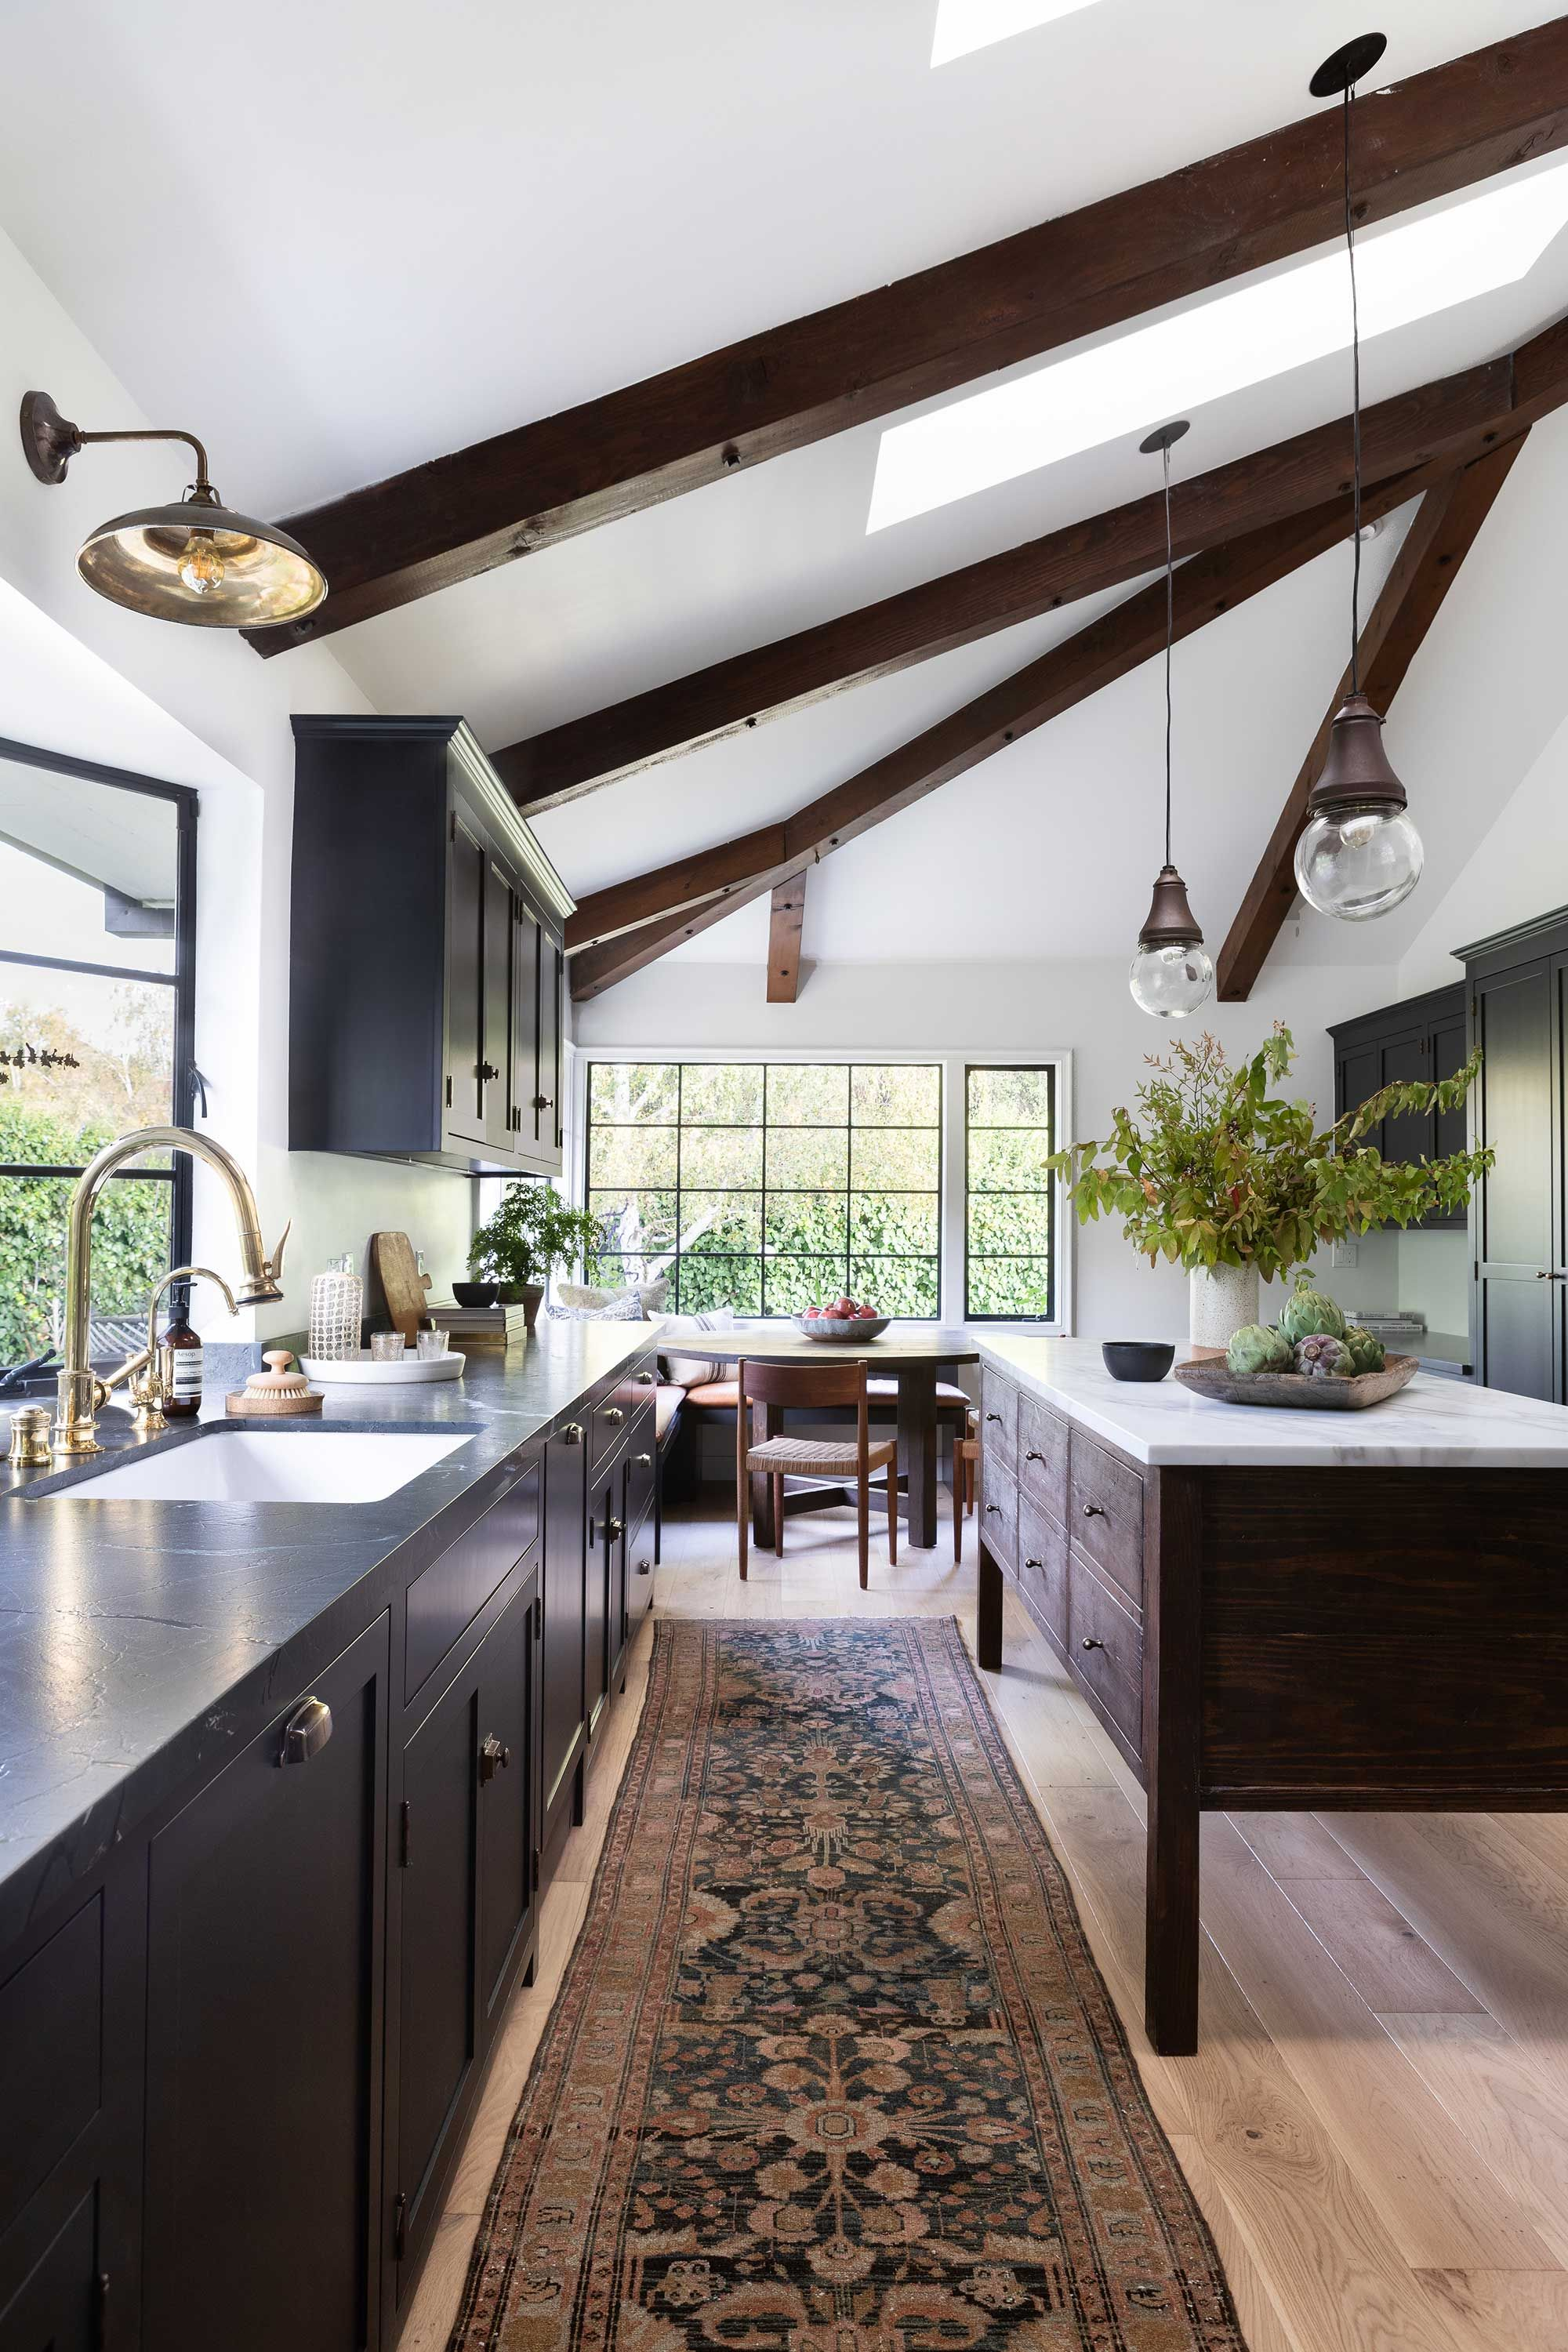 Designer Amber Lewis Swears By These 5 Kitchen Renovating Tips